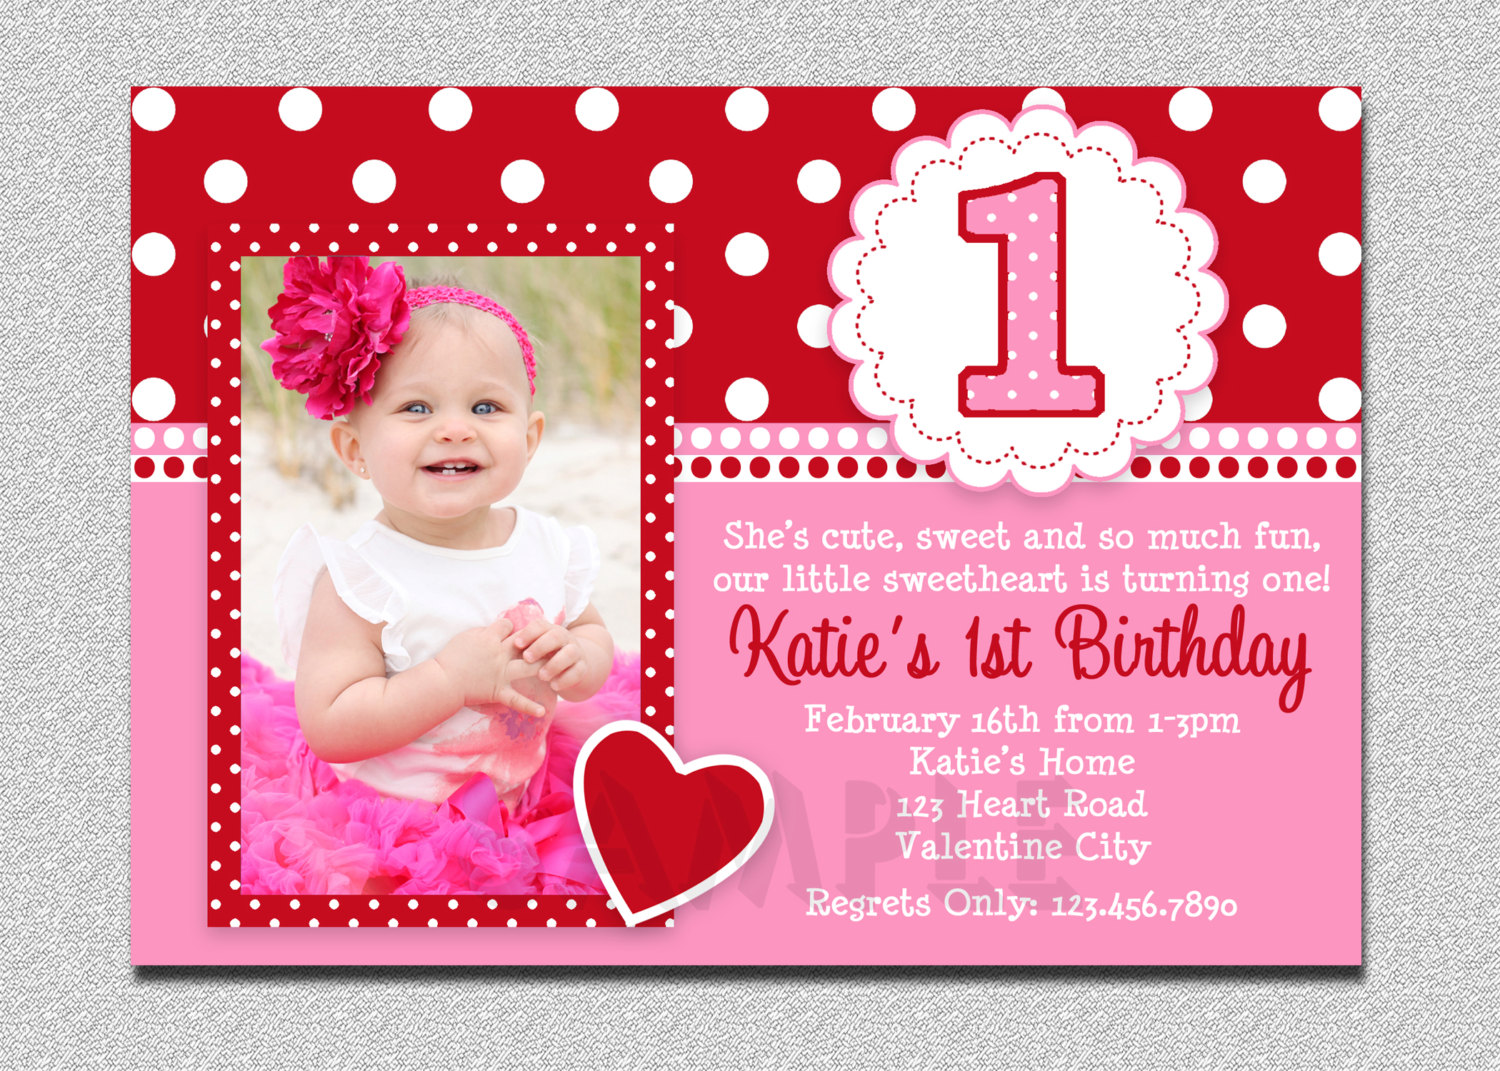 1st birthday card invitation designs free ; New-First-Birthday-Party-Invitations-To-Make-Birthday-Invitation-Templates